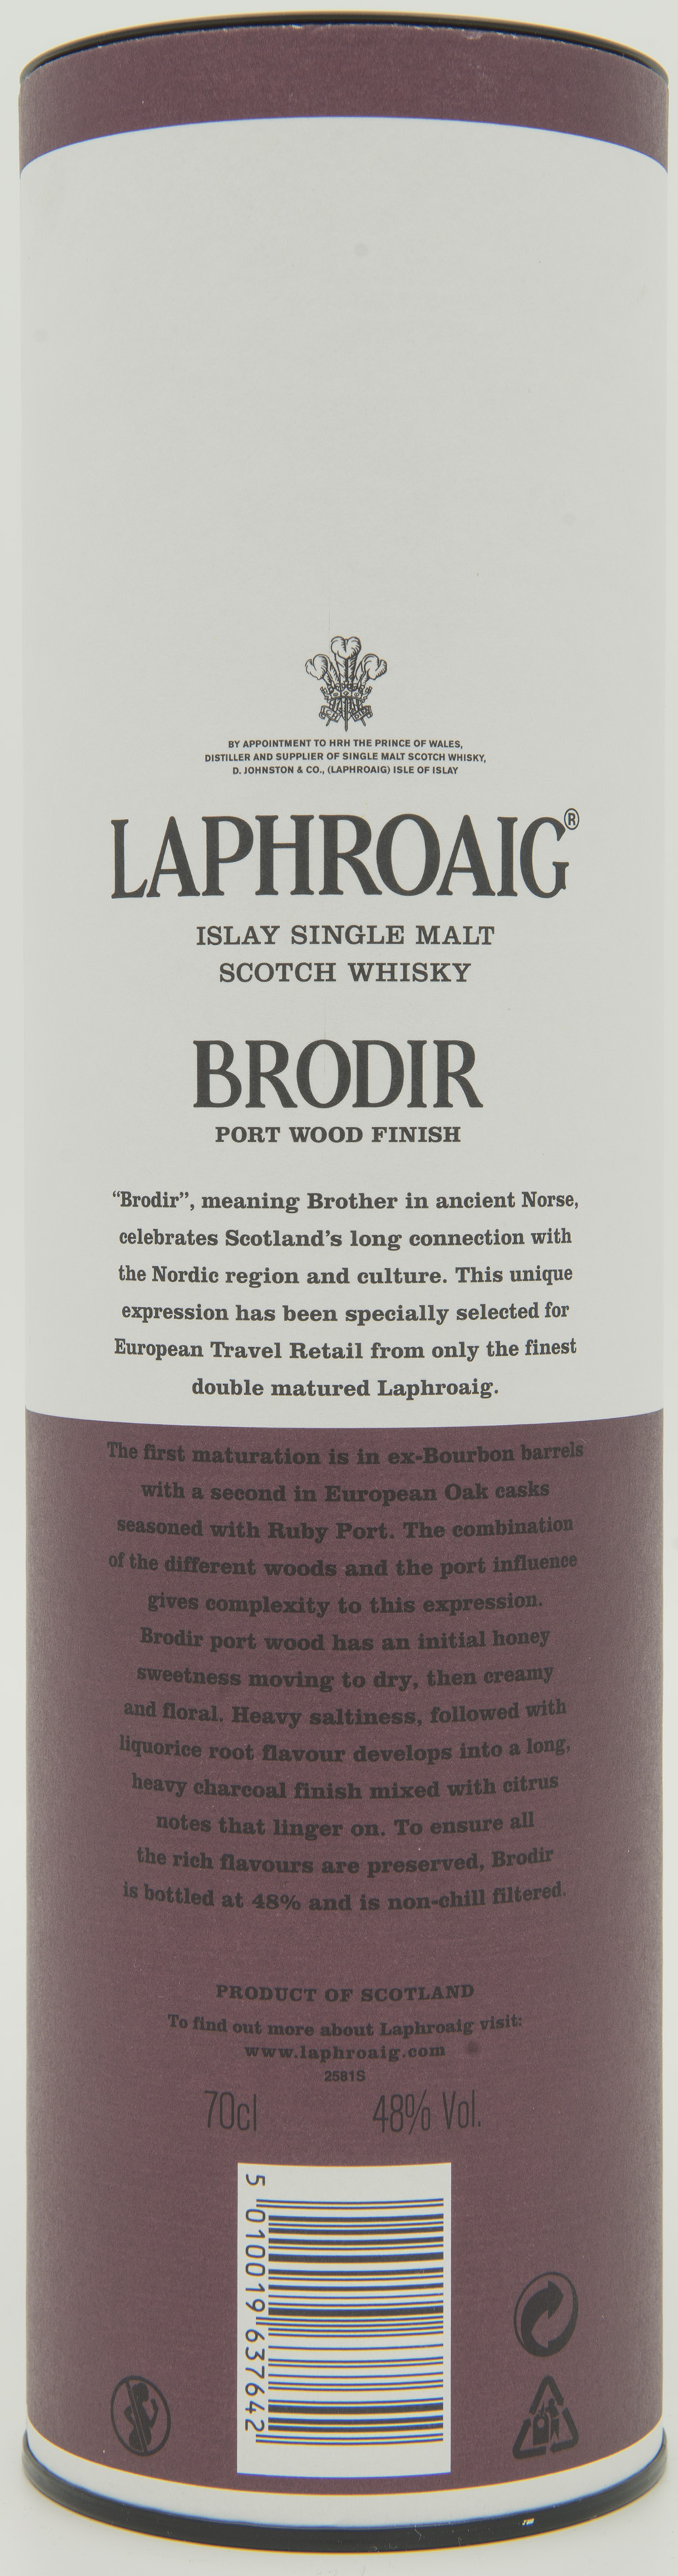 Billede: DSC_6444 - Laphroaig Brodir Port Wood Finish - Batch 001 - tube back.jpg